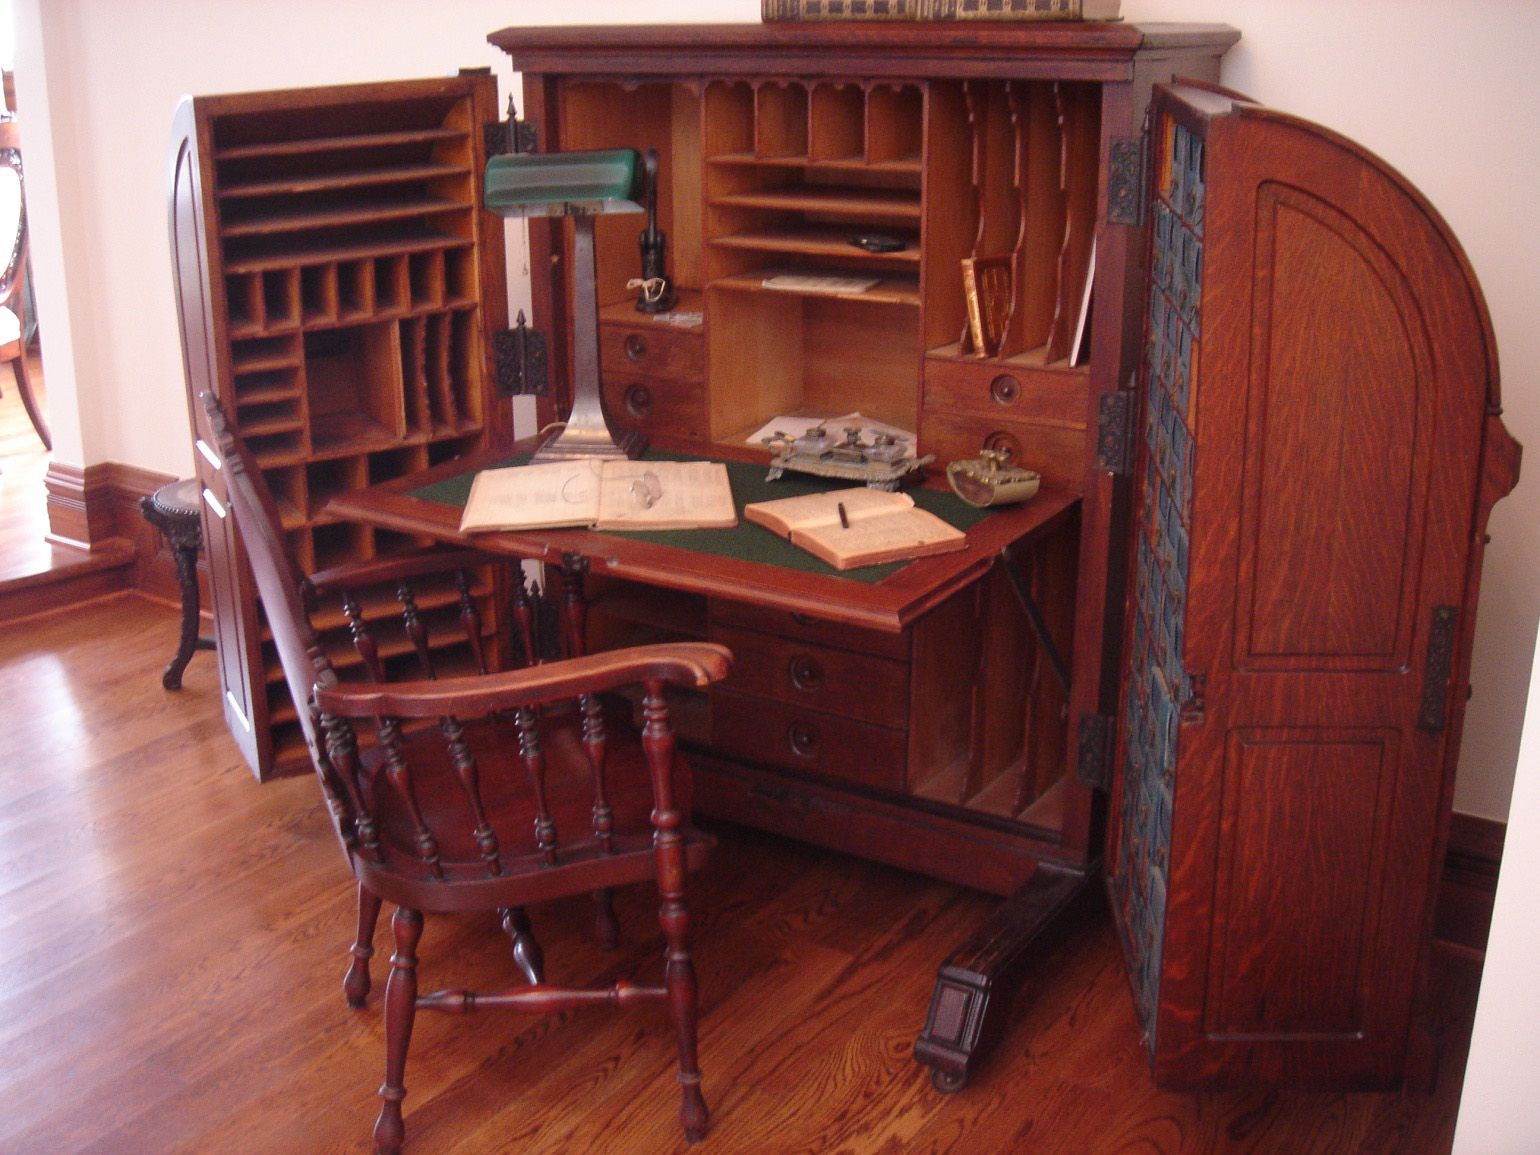 9 Antique Desk Styles You Probably Don't Know - A Guide To Identifying French Antique Furniture